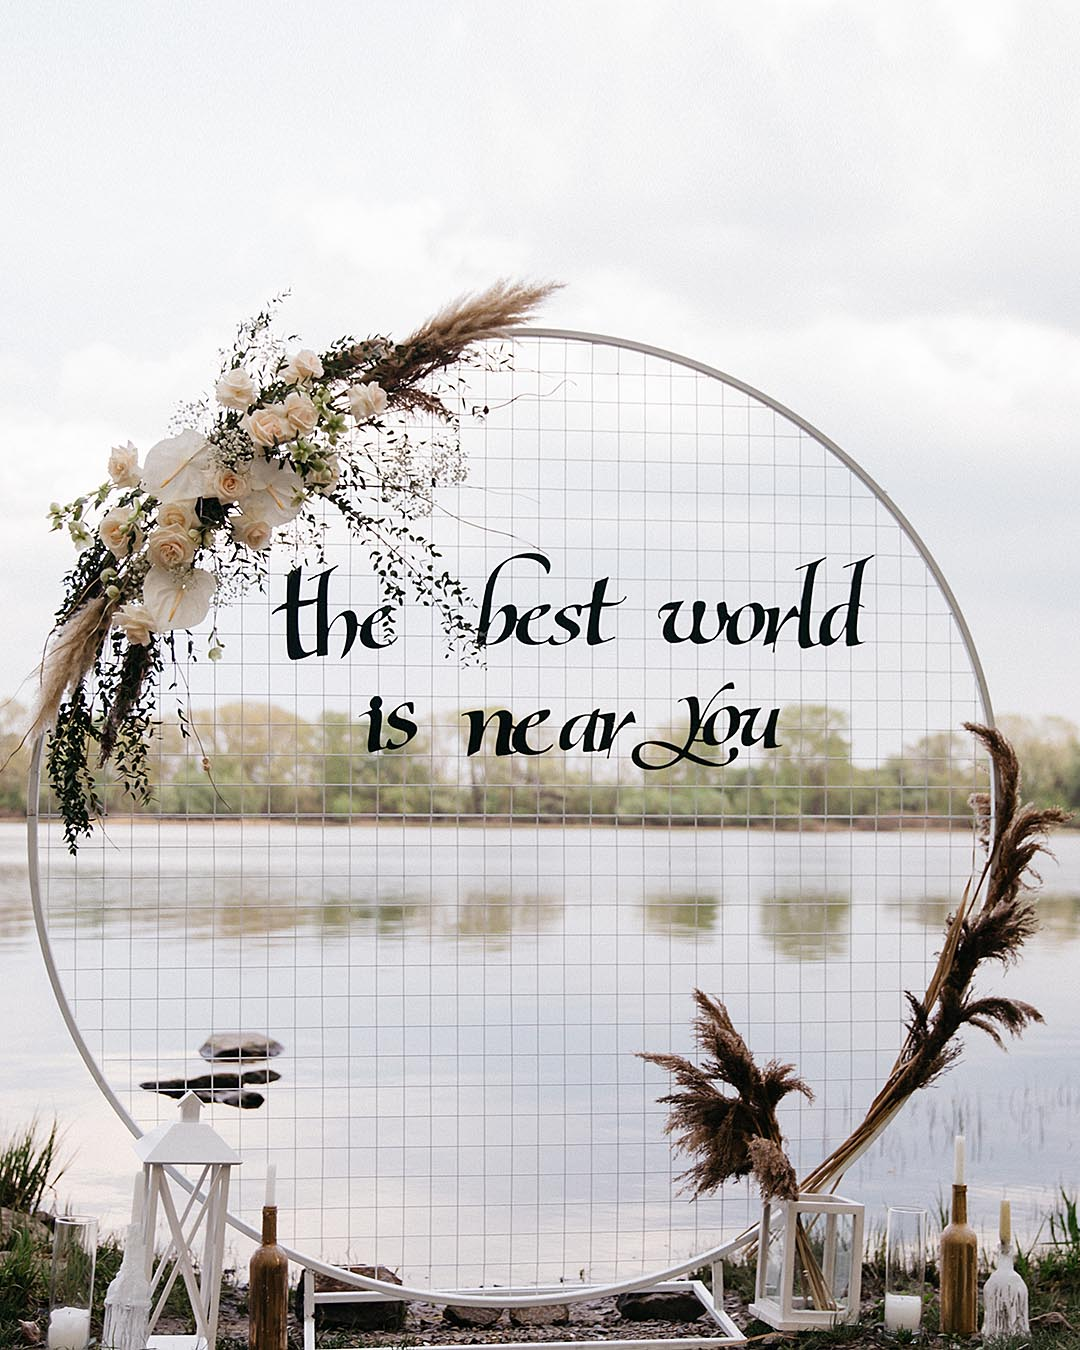 rustic wedding ideas personalized wedding arch with quote